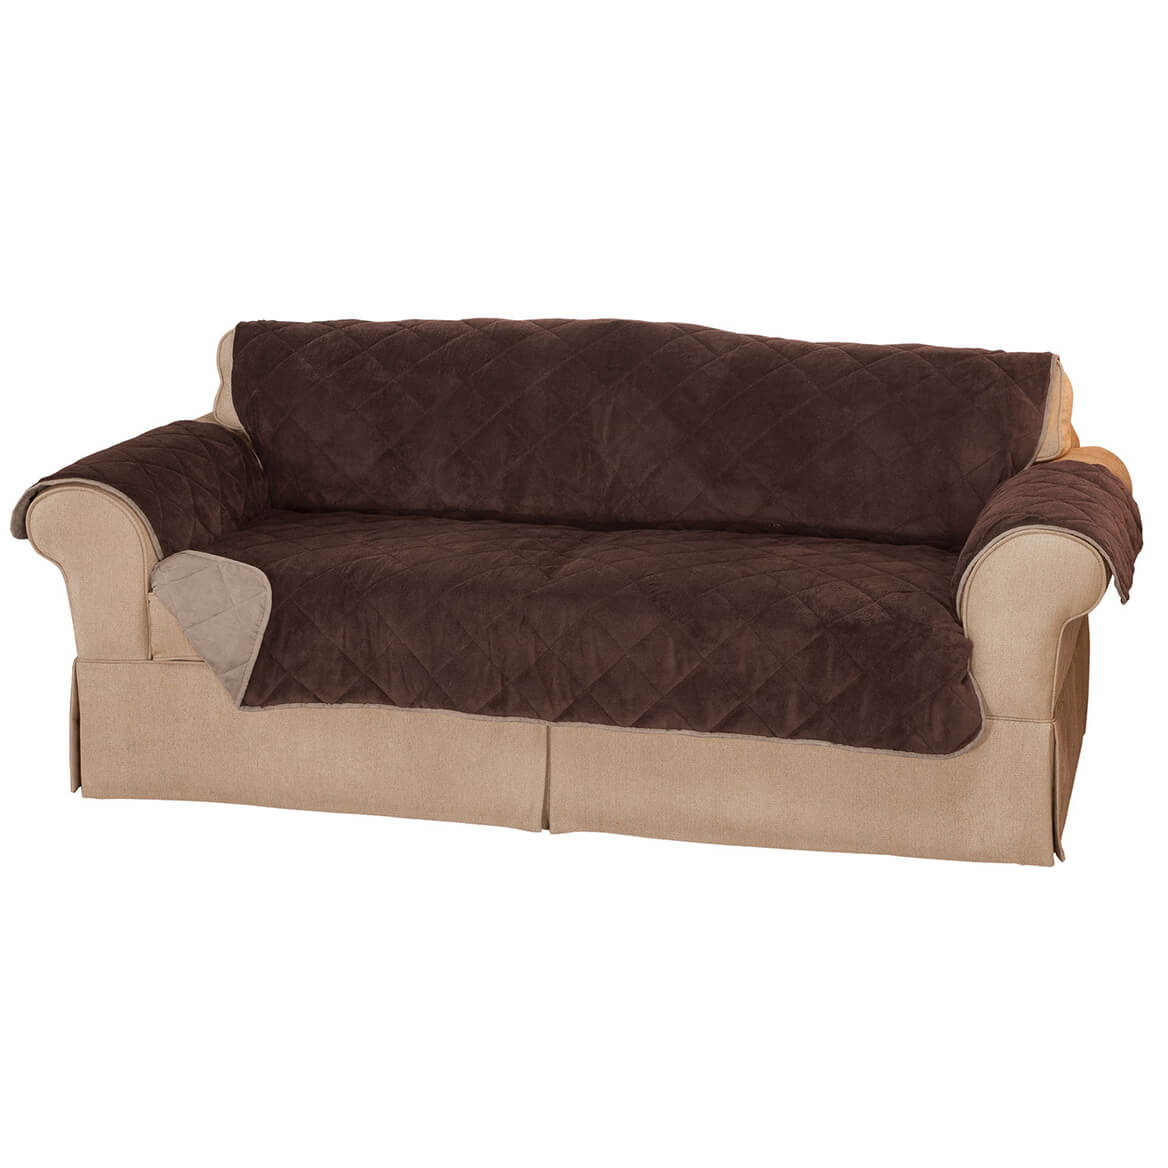 Plush To Suede Waterproof Sofa Protector By Oakridge